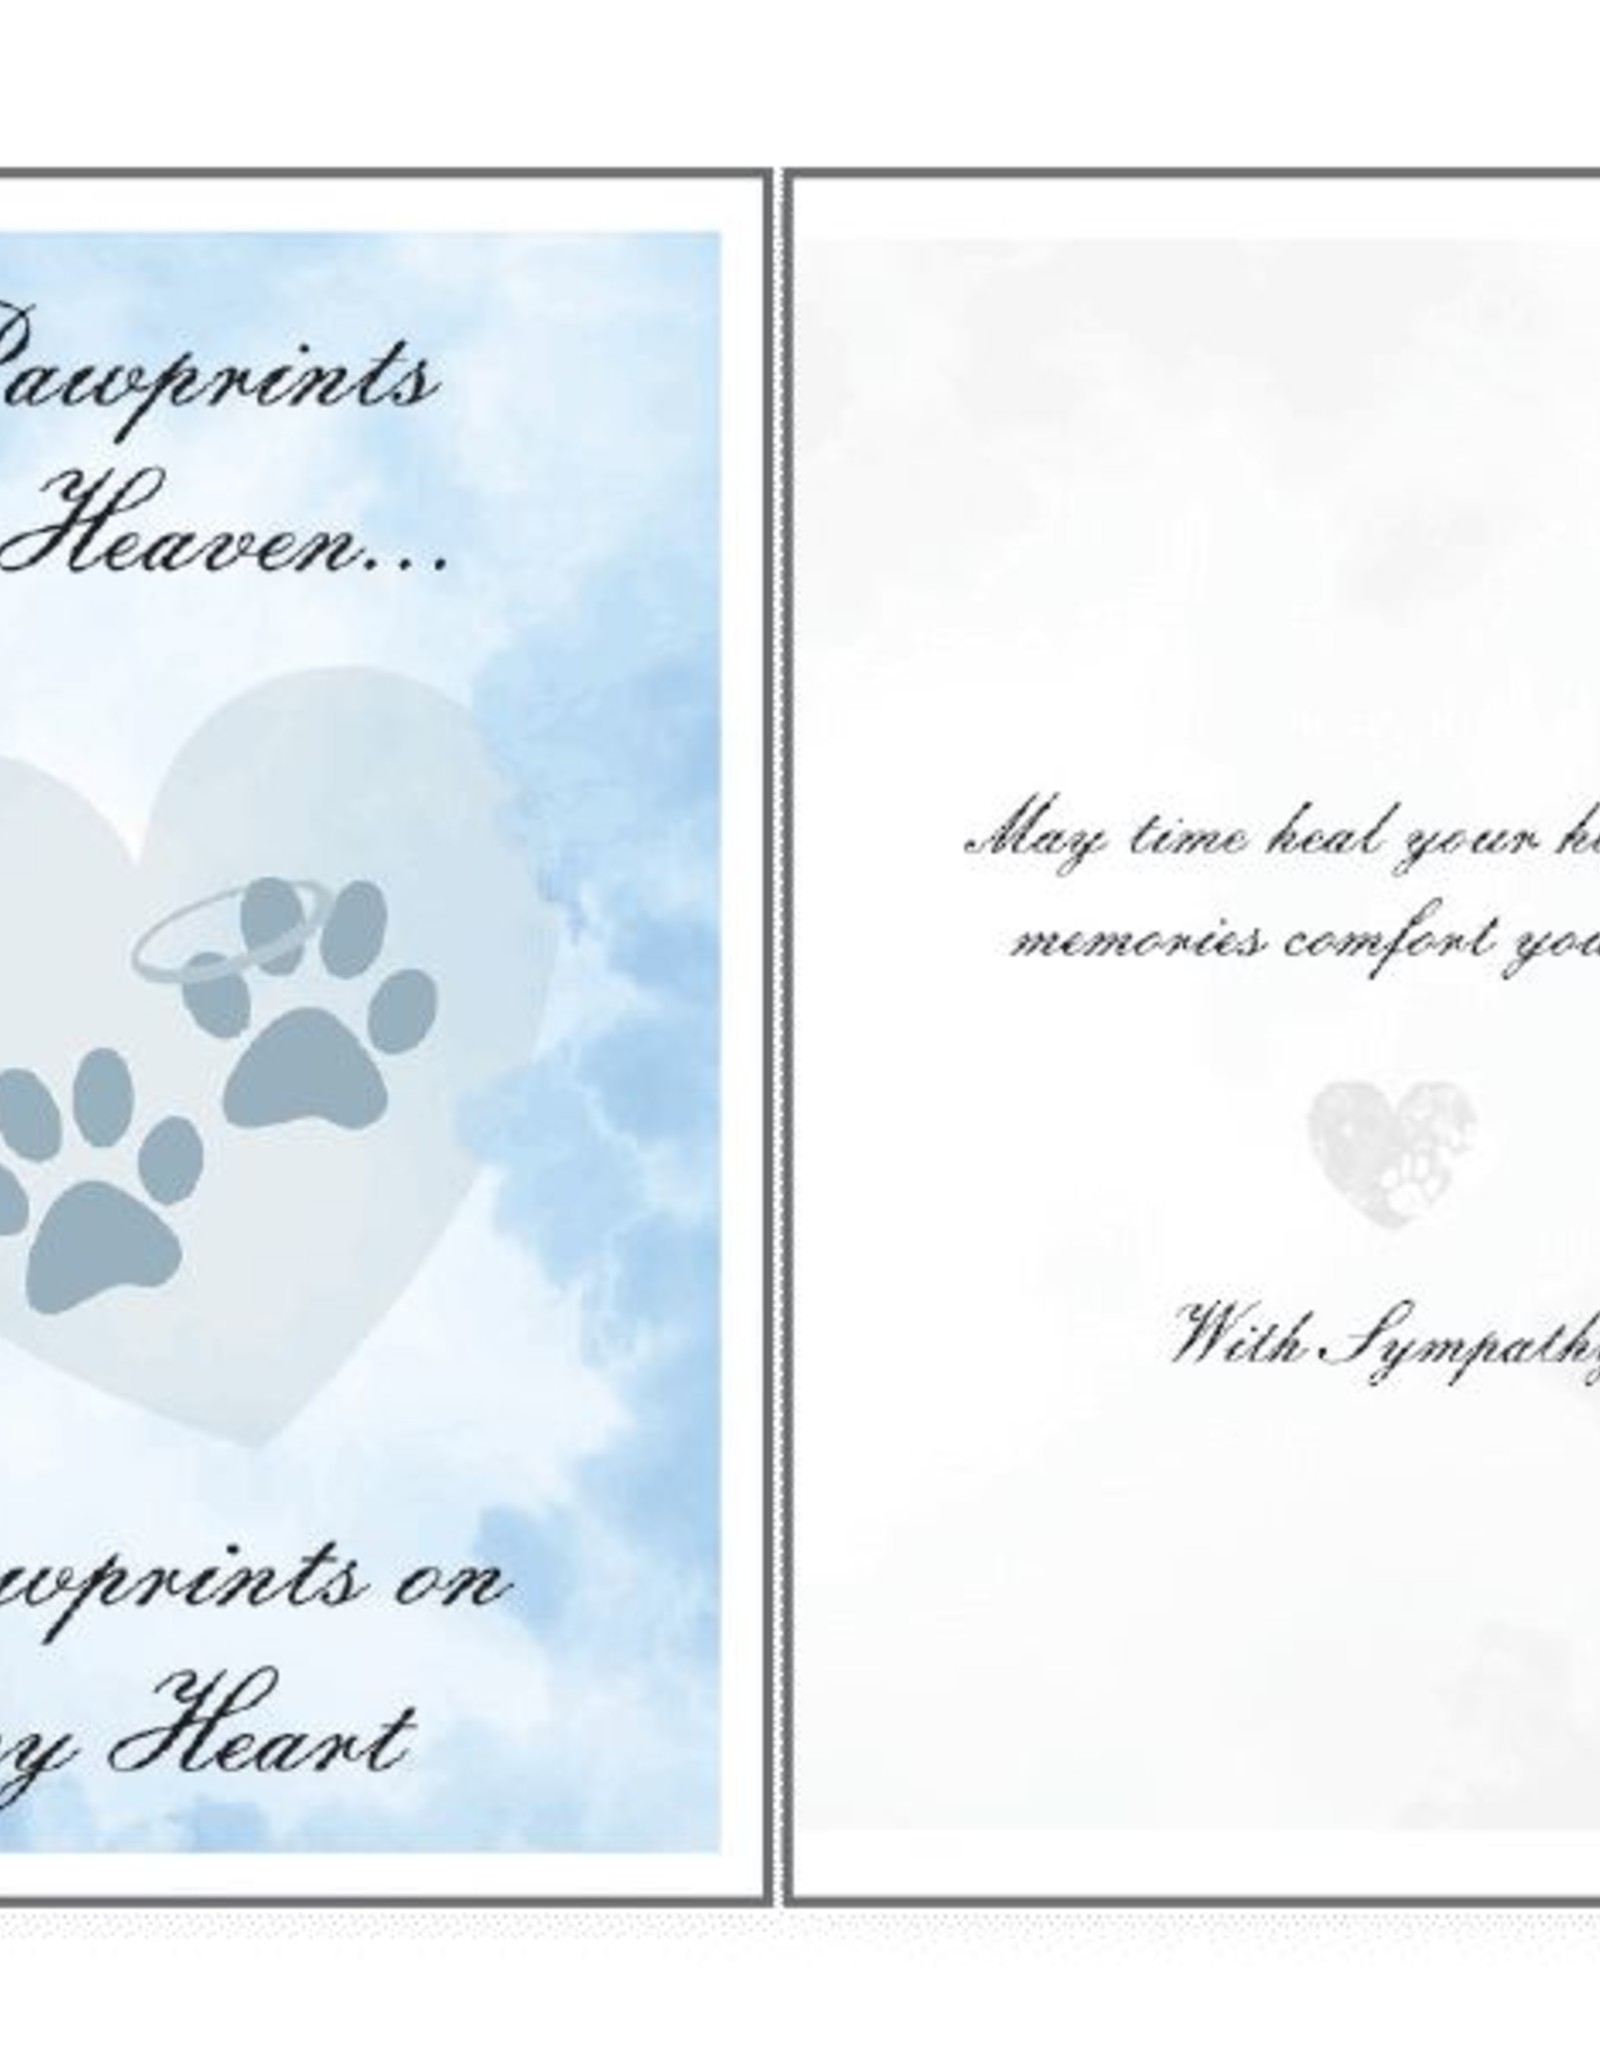 Dog Speak Dog Speak Card - Sympathy - Pawprints In Heaven, Pawprints on my Heart